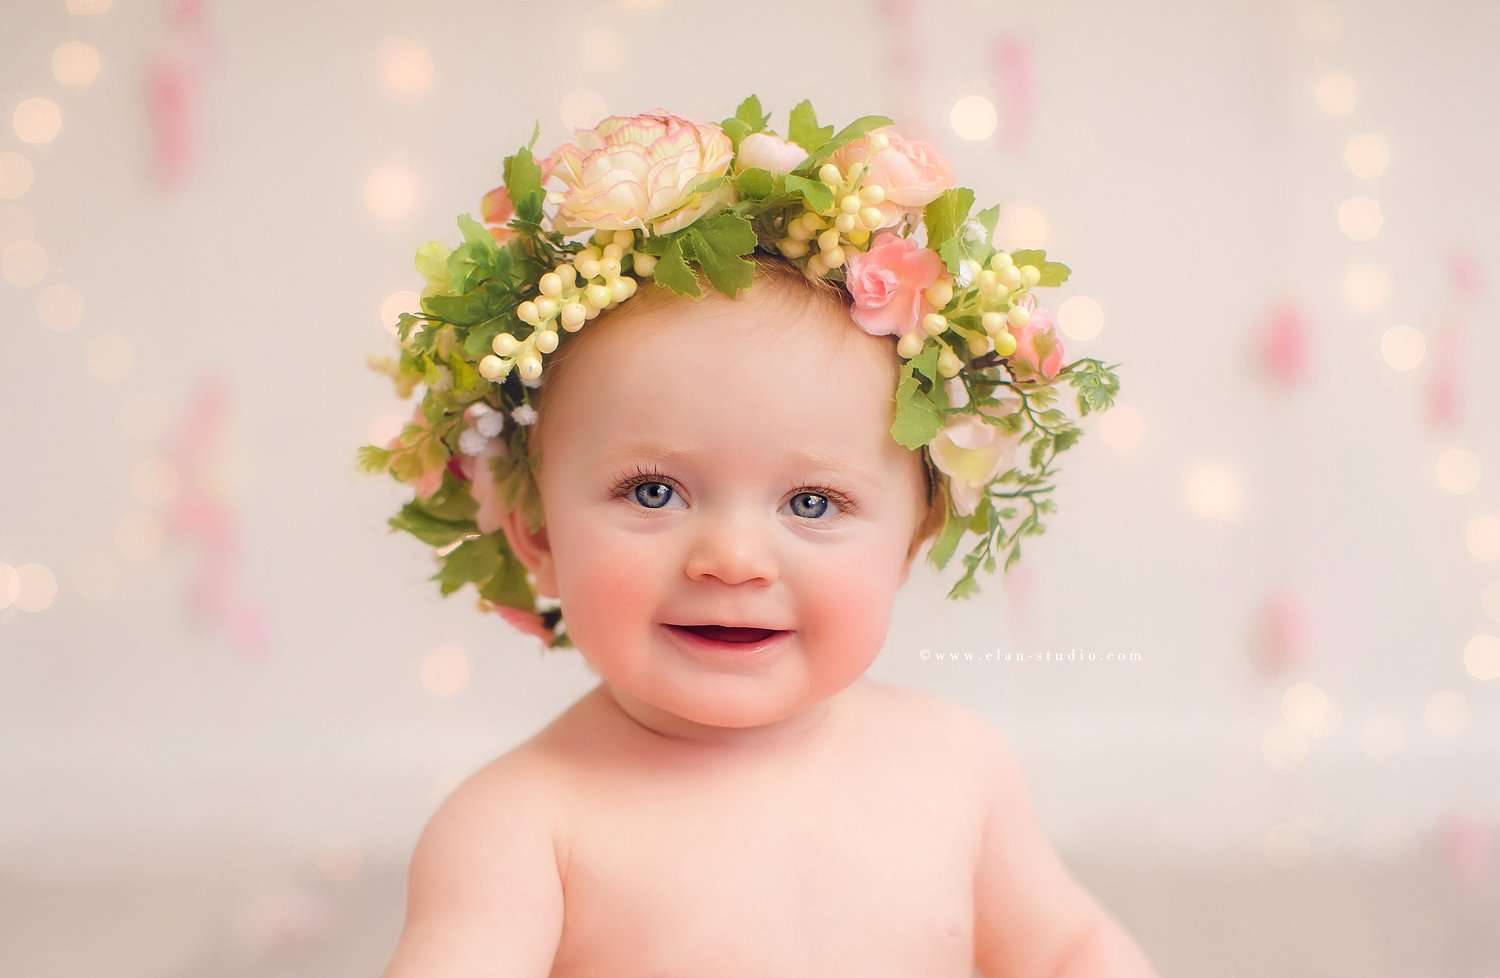 smiling baby girl with blue eyes, wearing flower crown